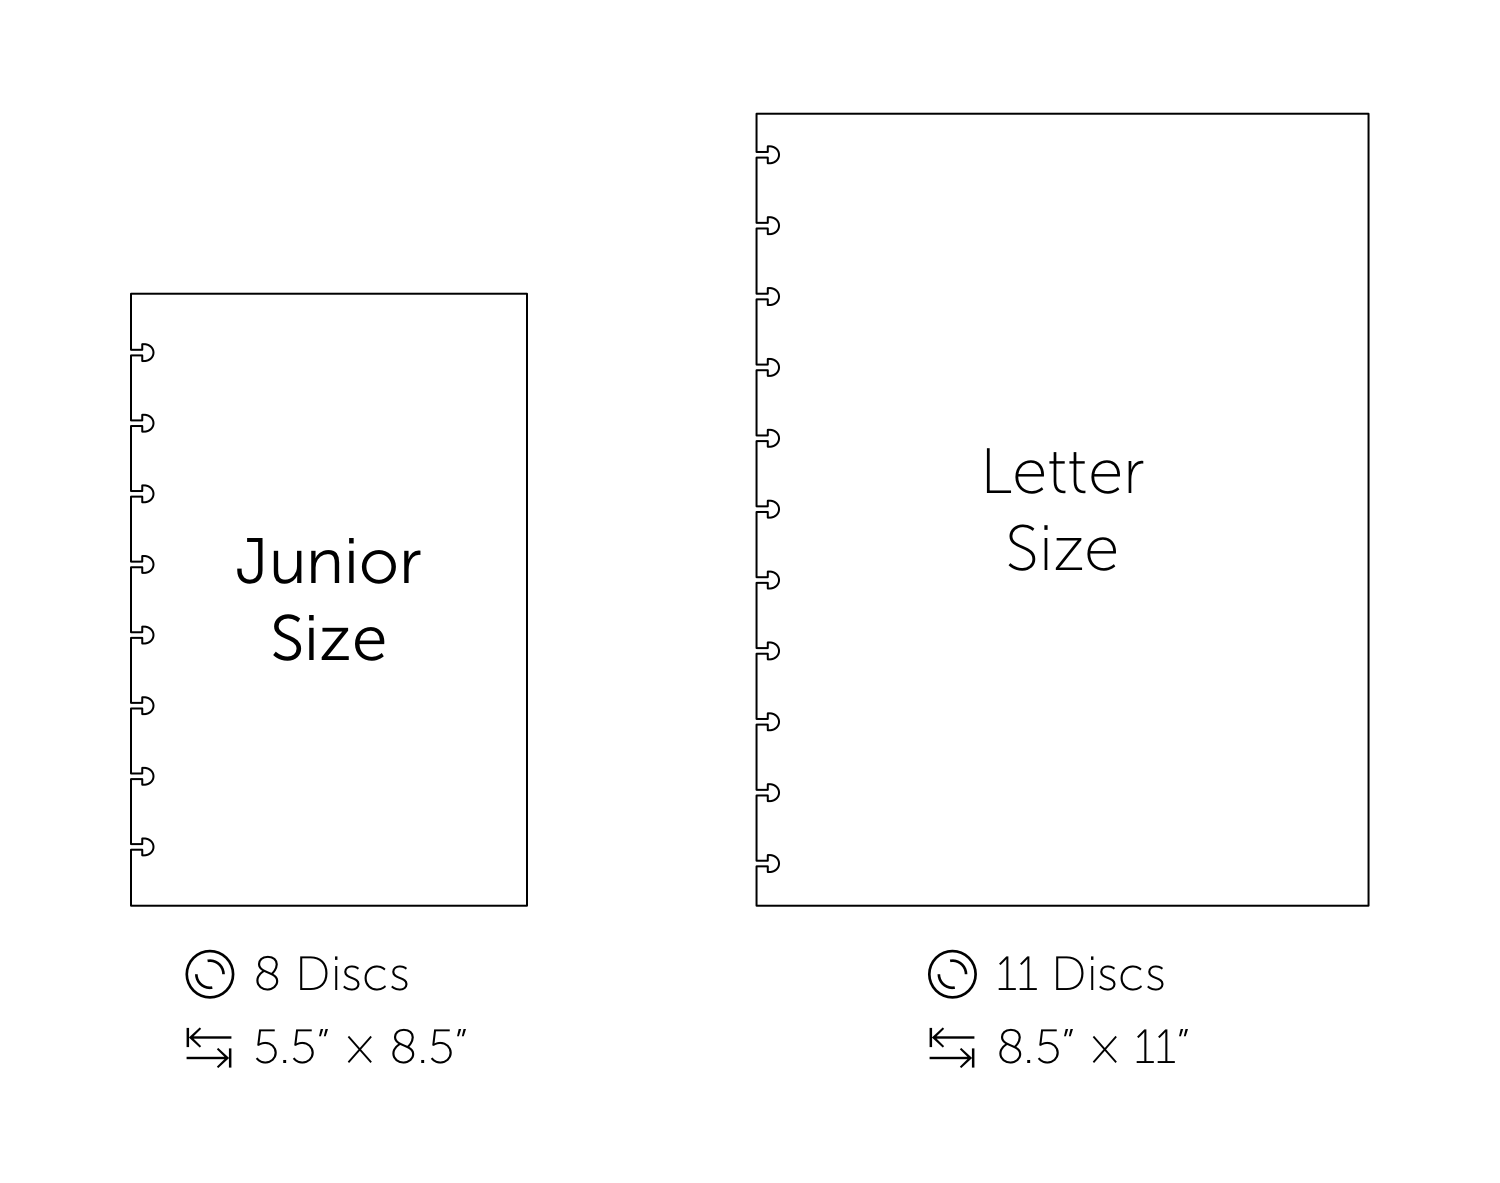 Our  Junior  and  Letter  sheets fit discbound notebooks by major brands with, respectively, 8 and 11 discs. This includes Levenger Circa, Staples Arc, Office Depot TUL, Office by Martha Stewart, and the Big Happy Planner (Letter sheets only).